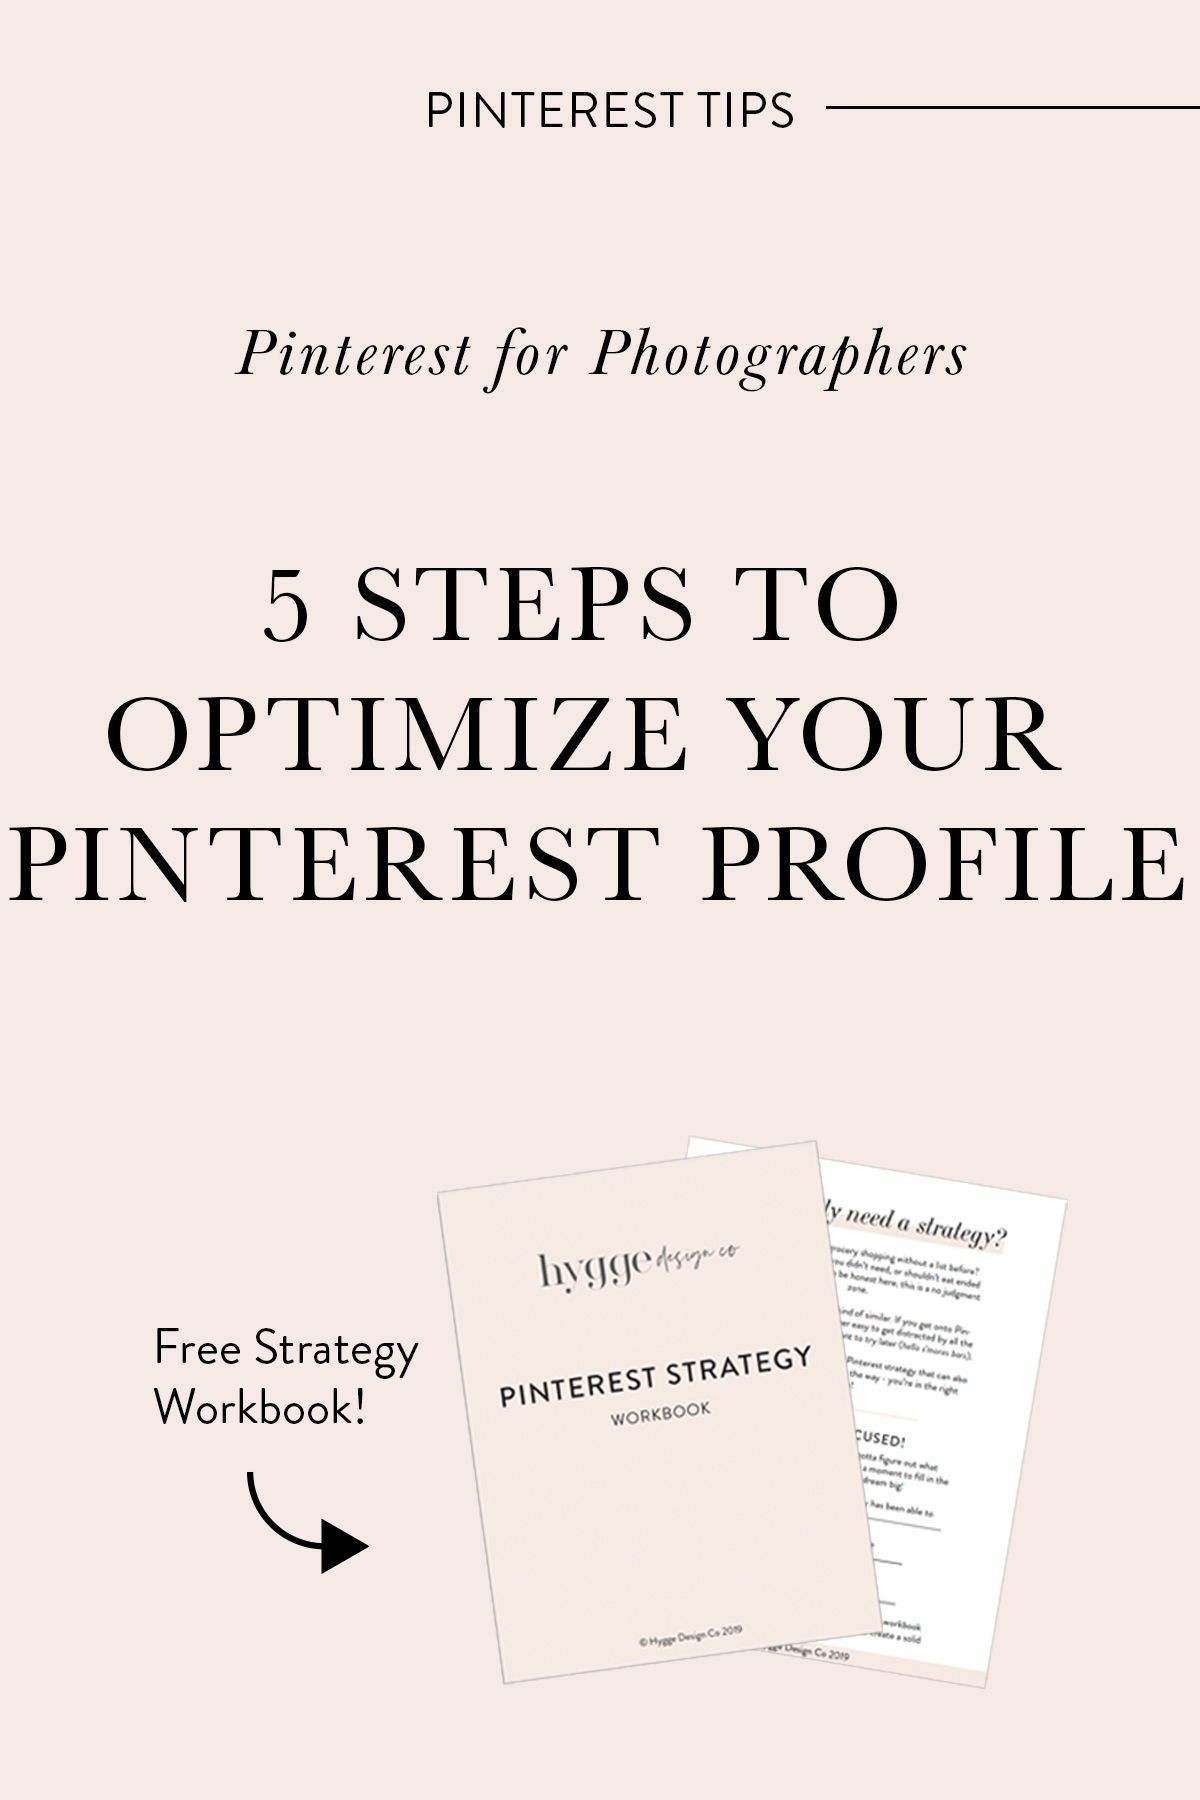 5 Steps to Optimizing your Pinterest Profile | Pinterest